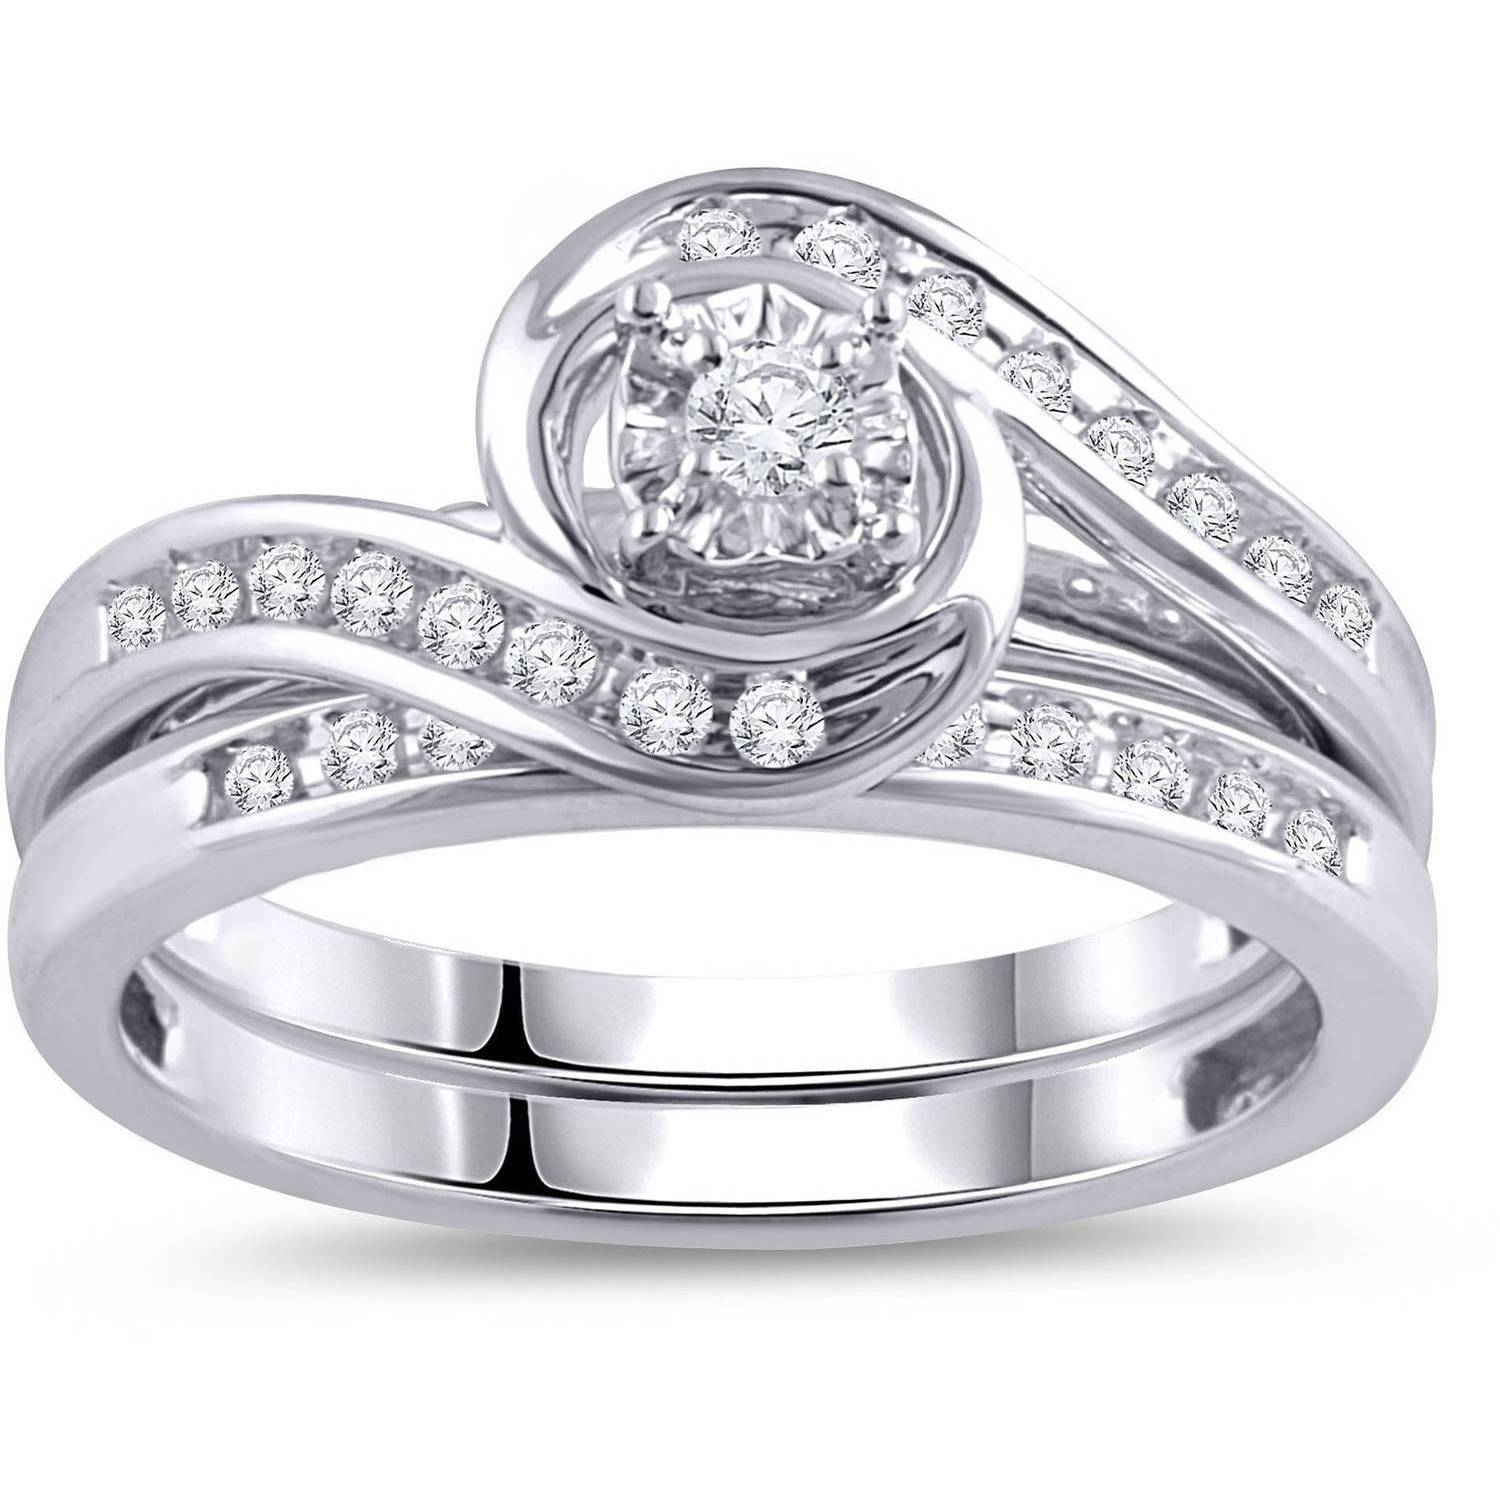 Cheap Wedding Ring Sets For Him And Her Bridal Sets Wedding Ring